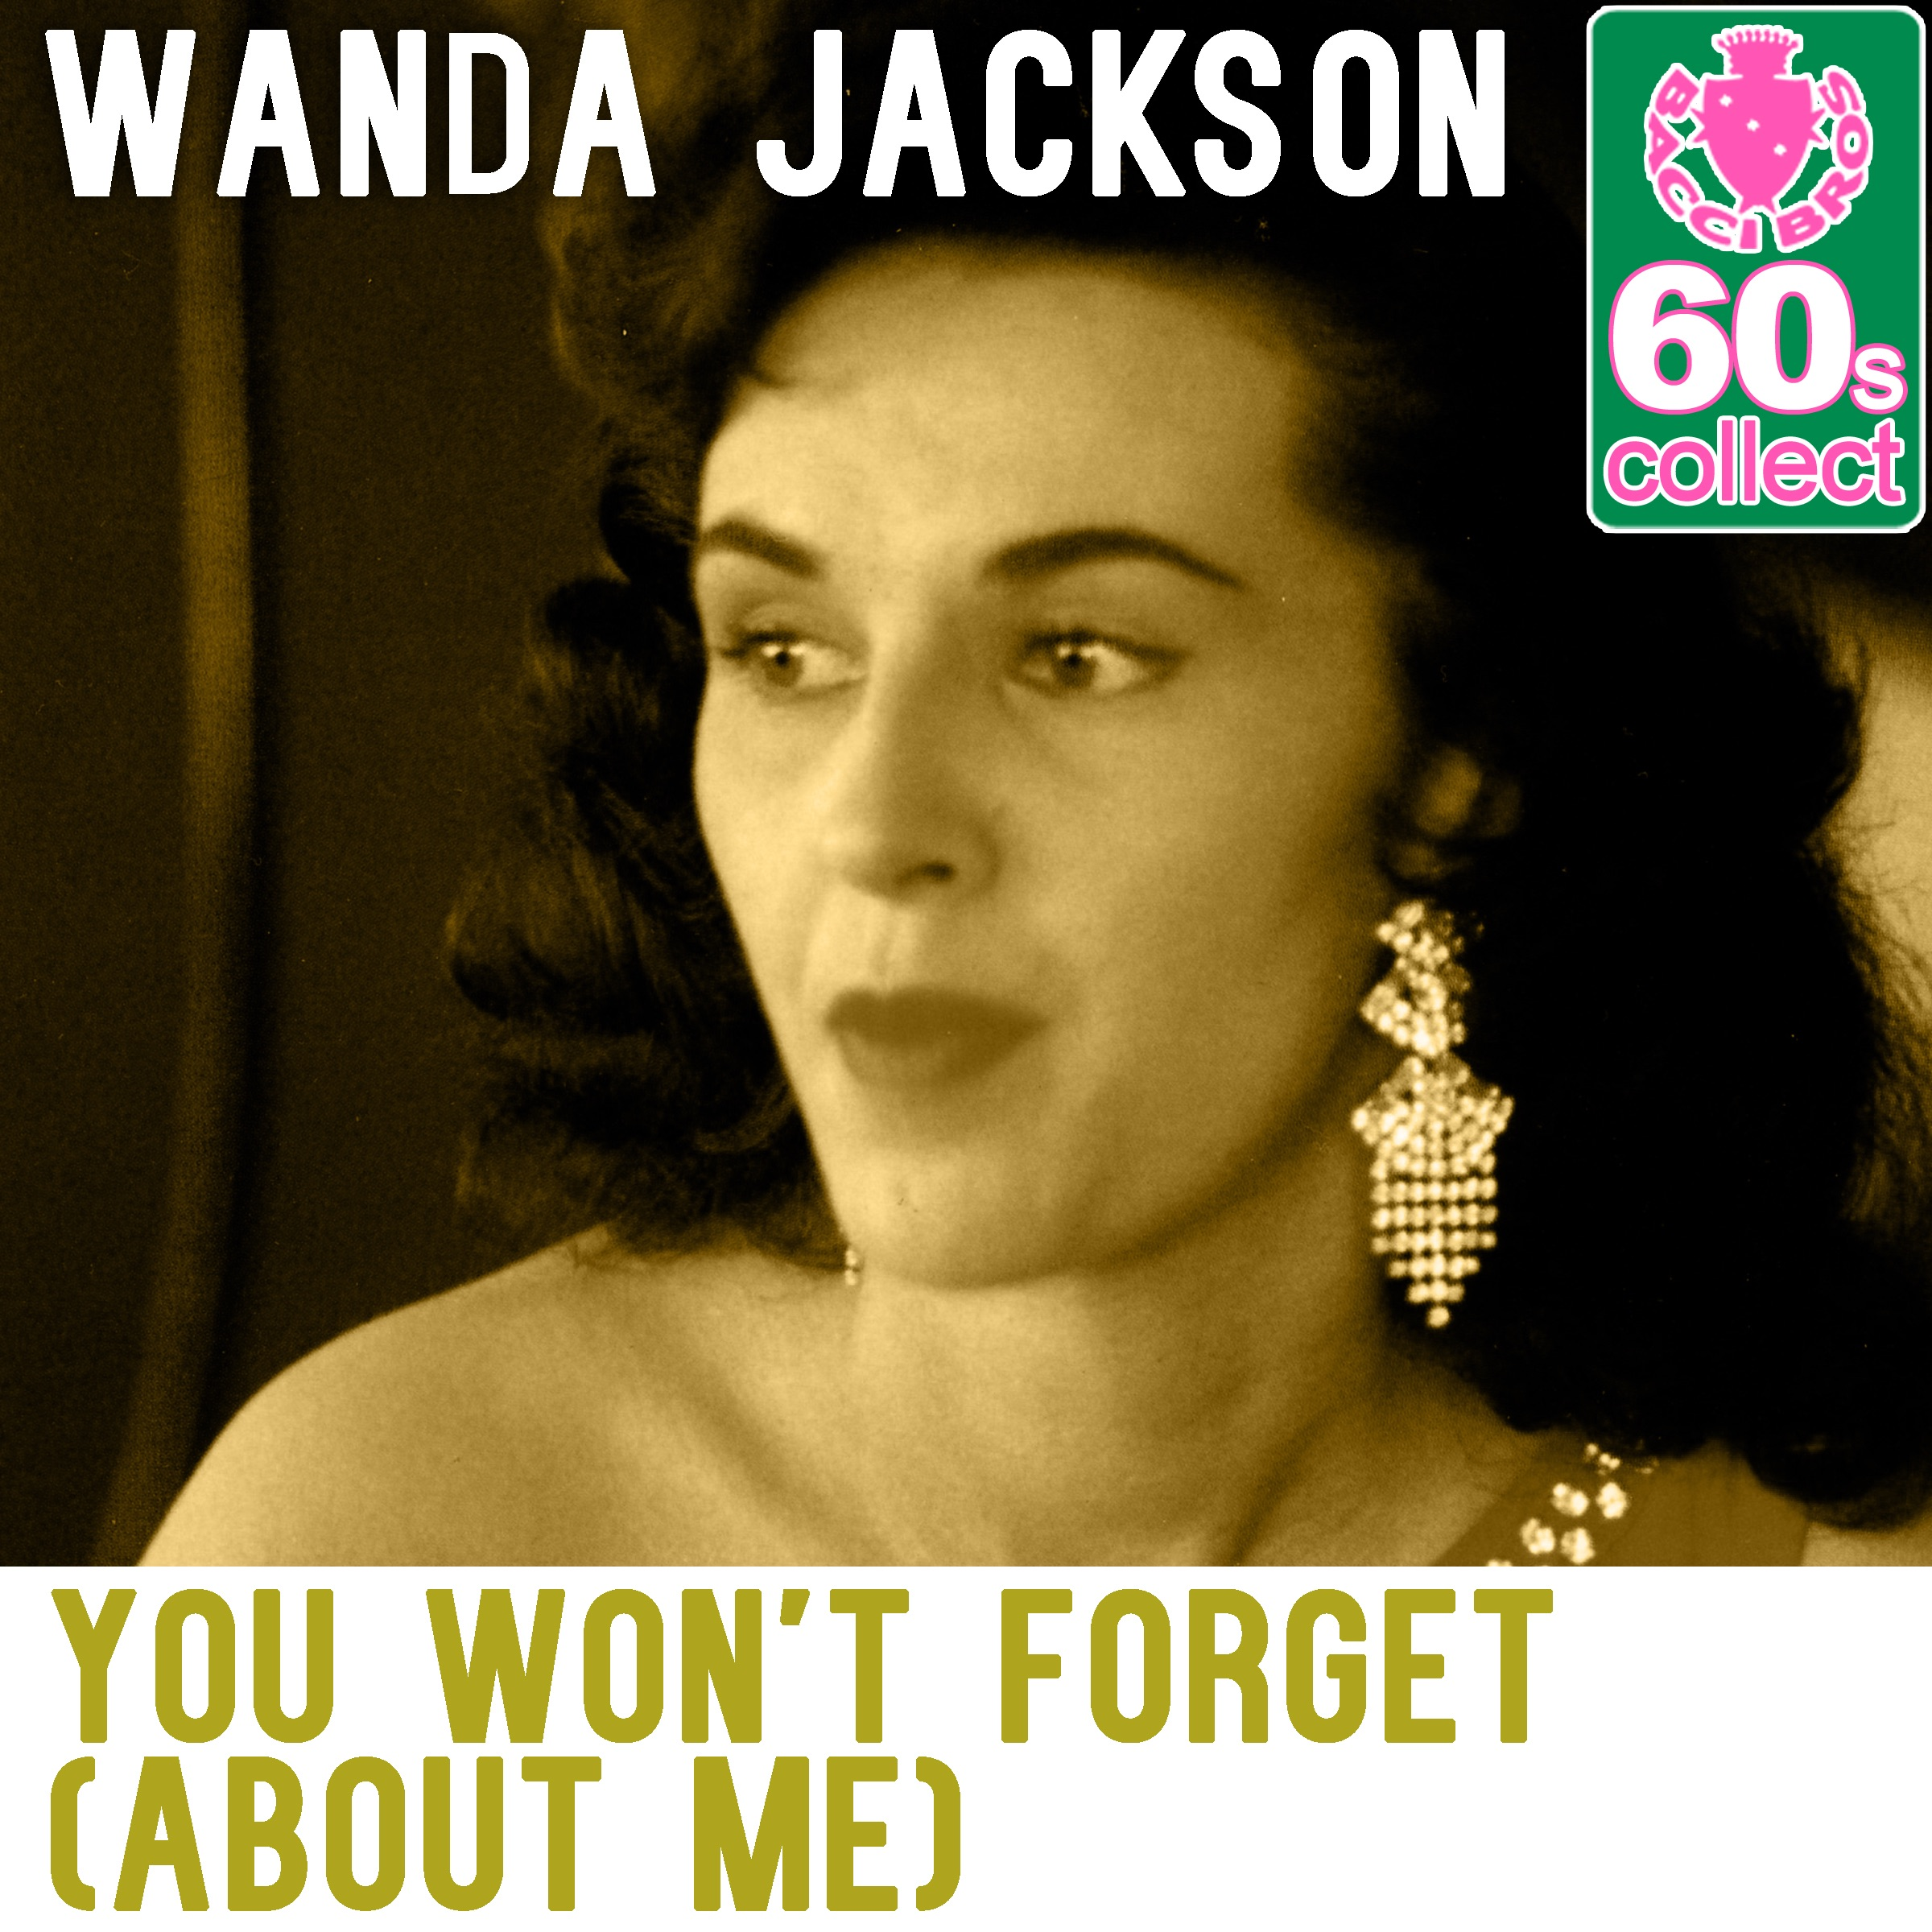 You Won't Forget (About Me) (Remastered) - Single